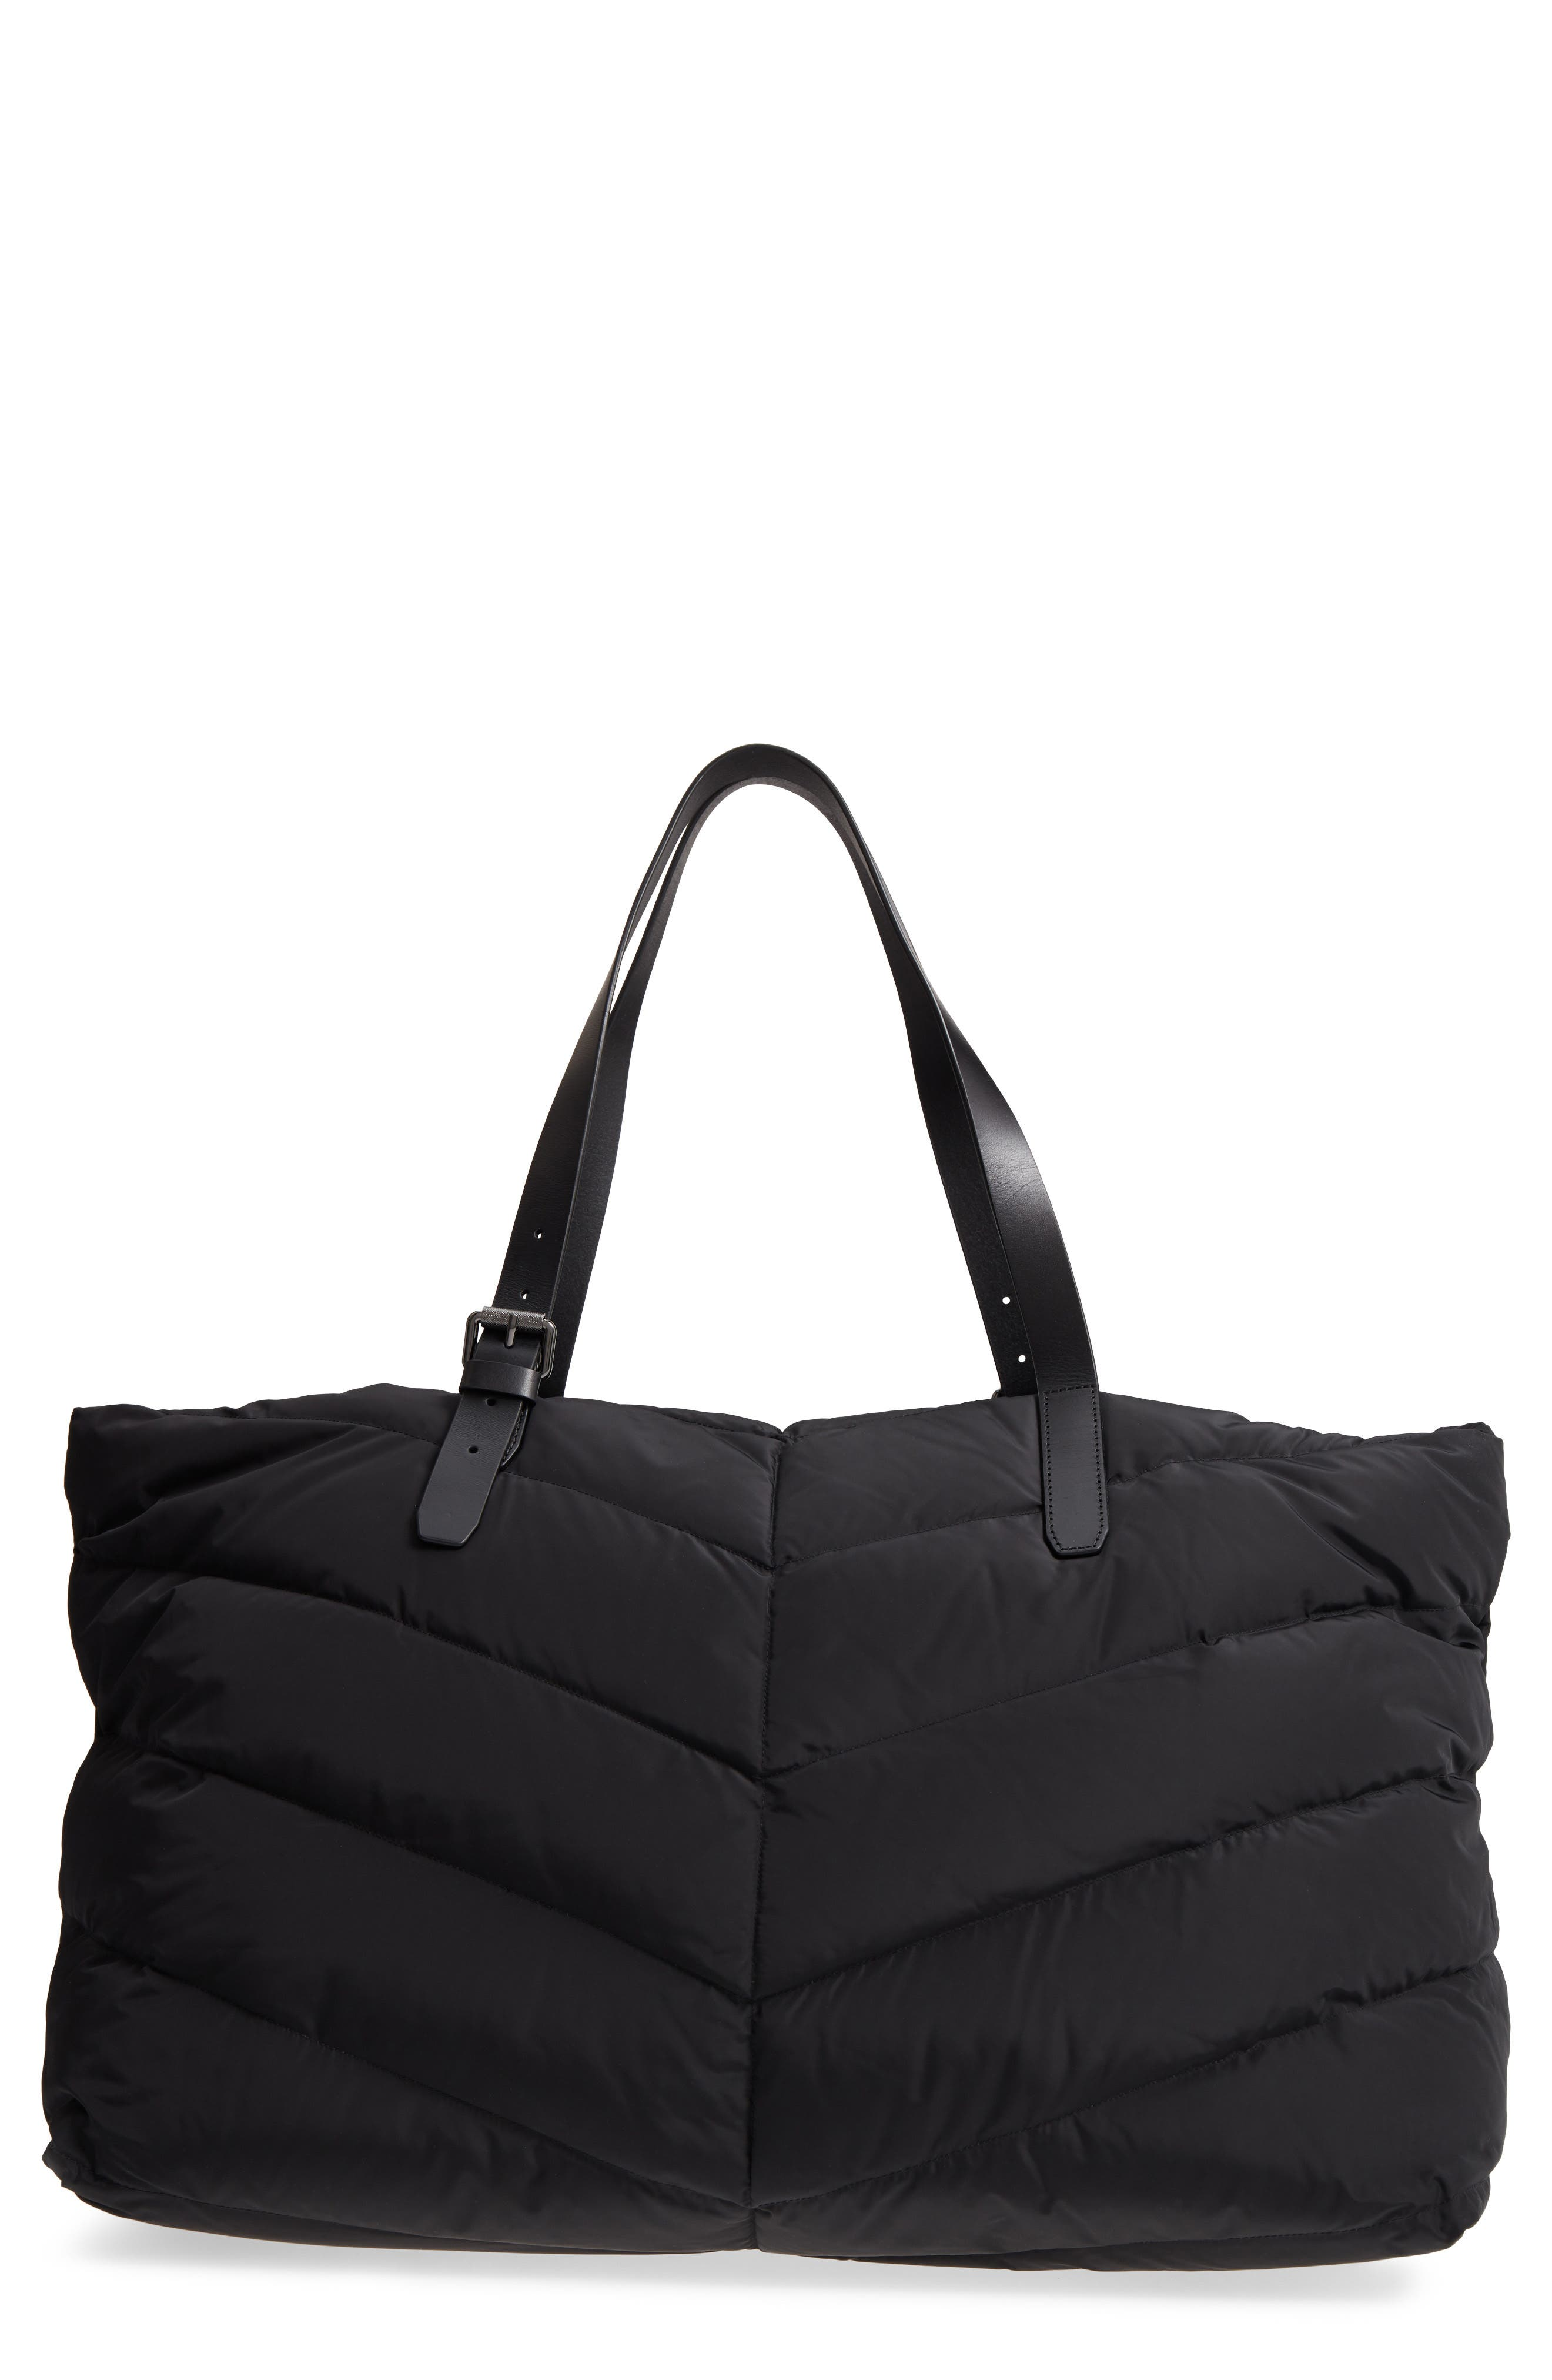 Emilee Quilted Nylon Weekend Tote,                             Main thumbnail 1, color,                             Black/ Gunmetal